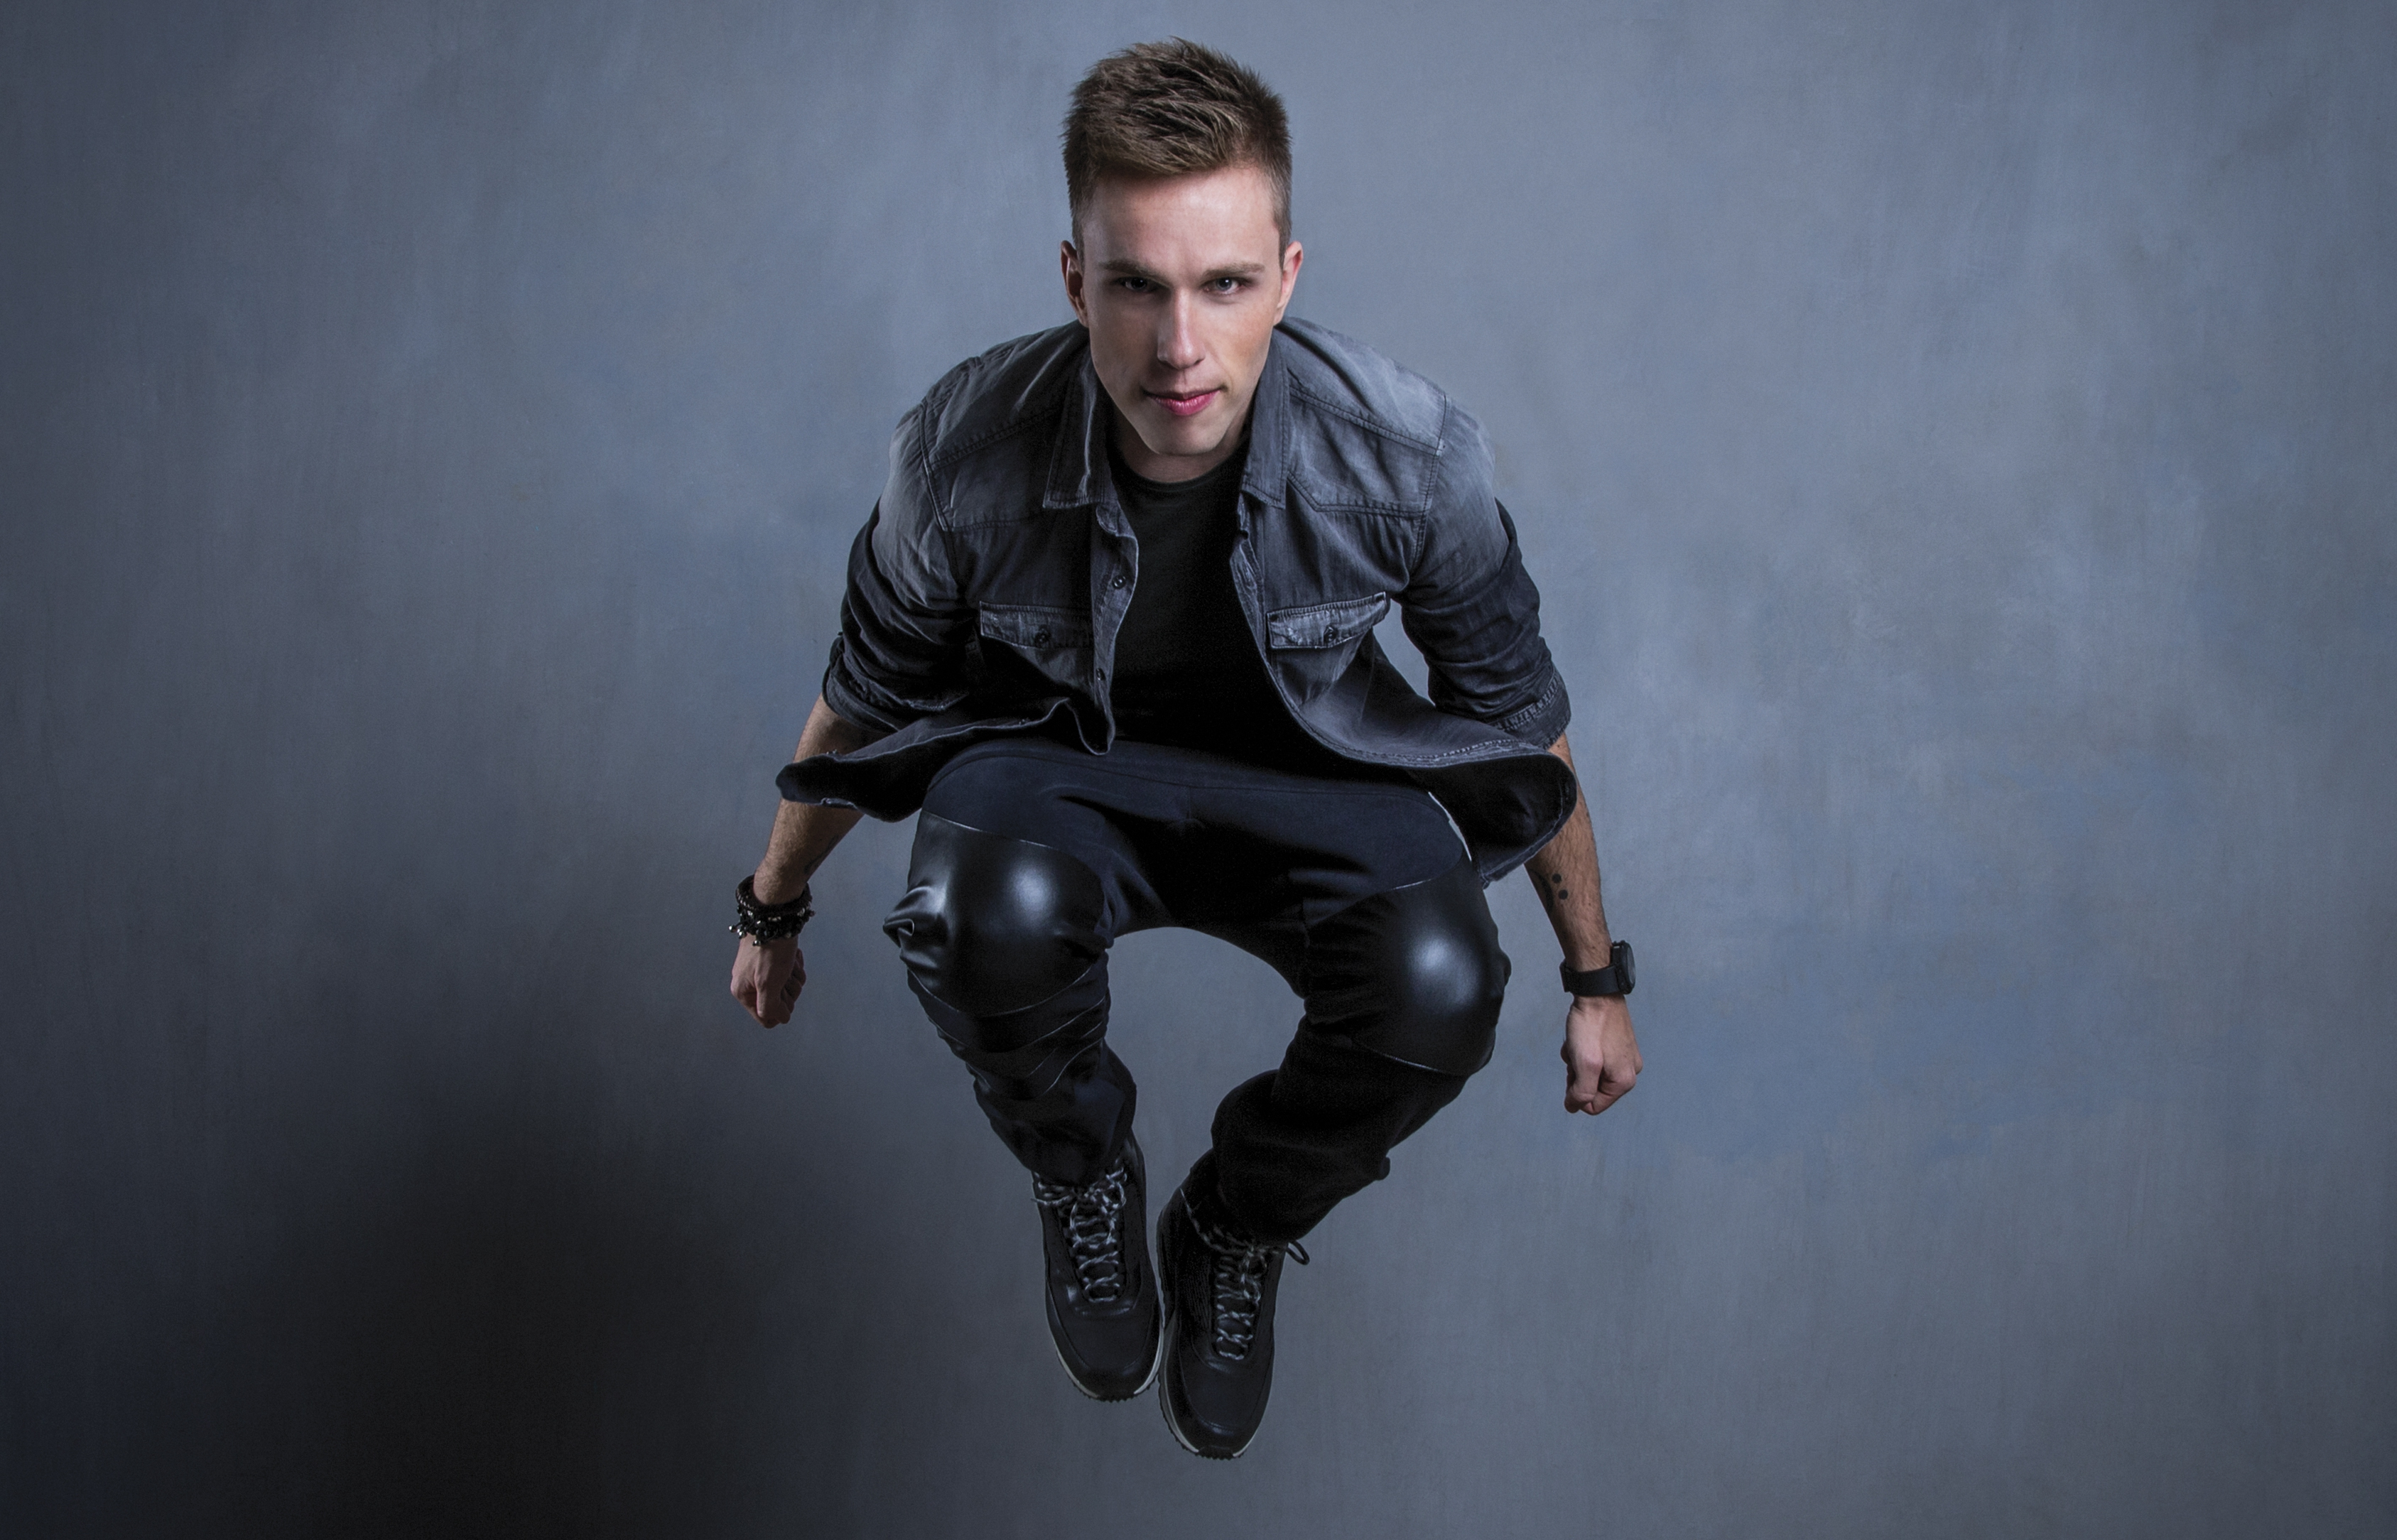 Nicky Romero Background